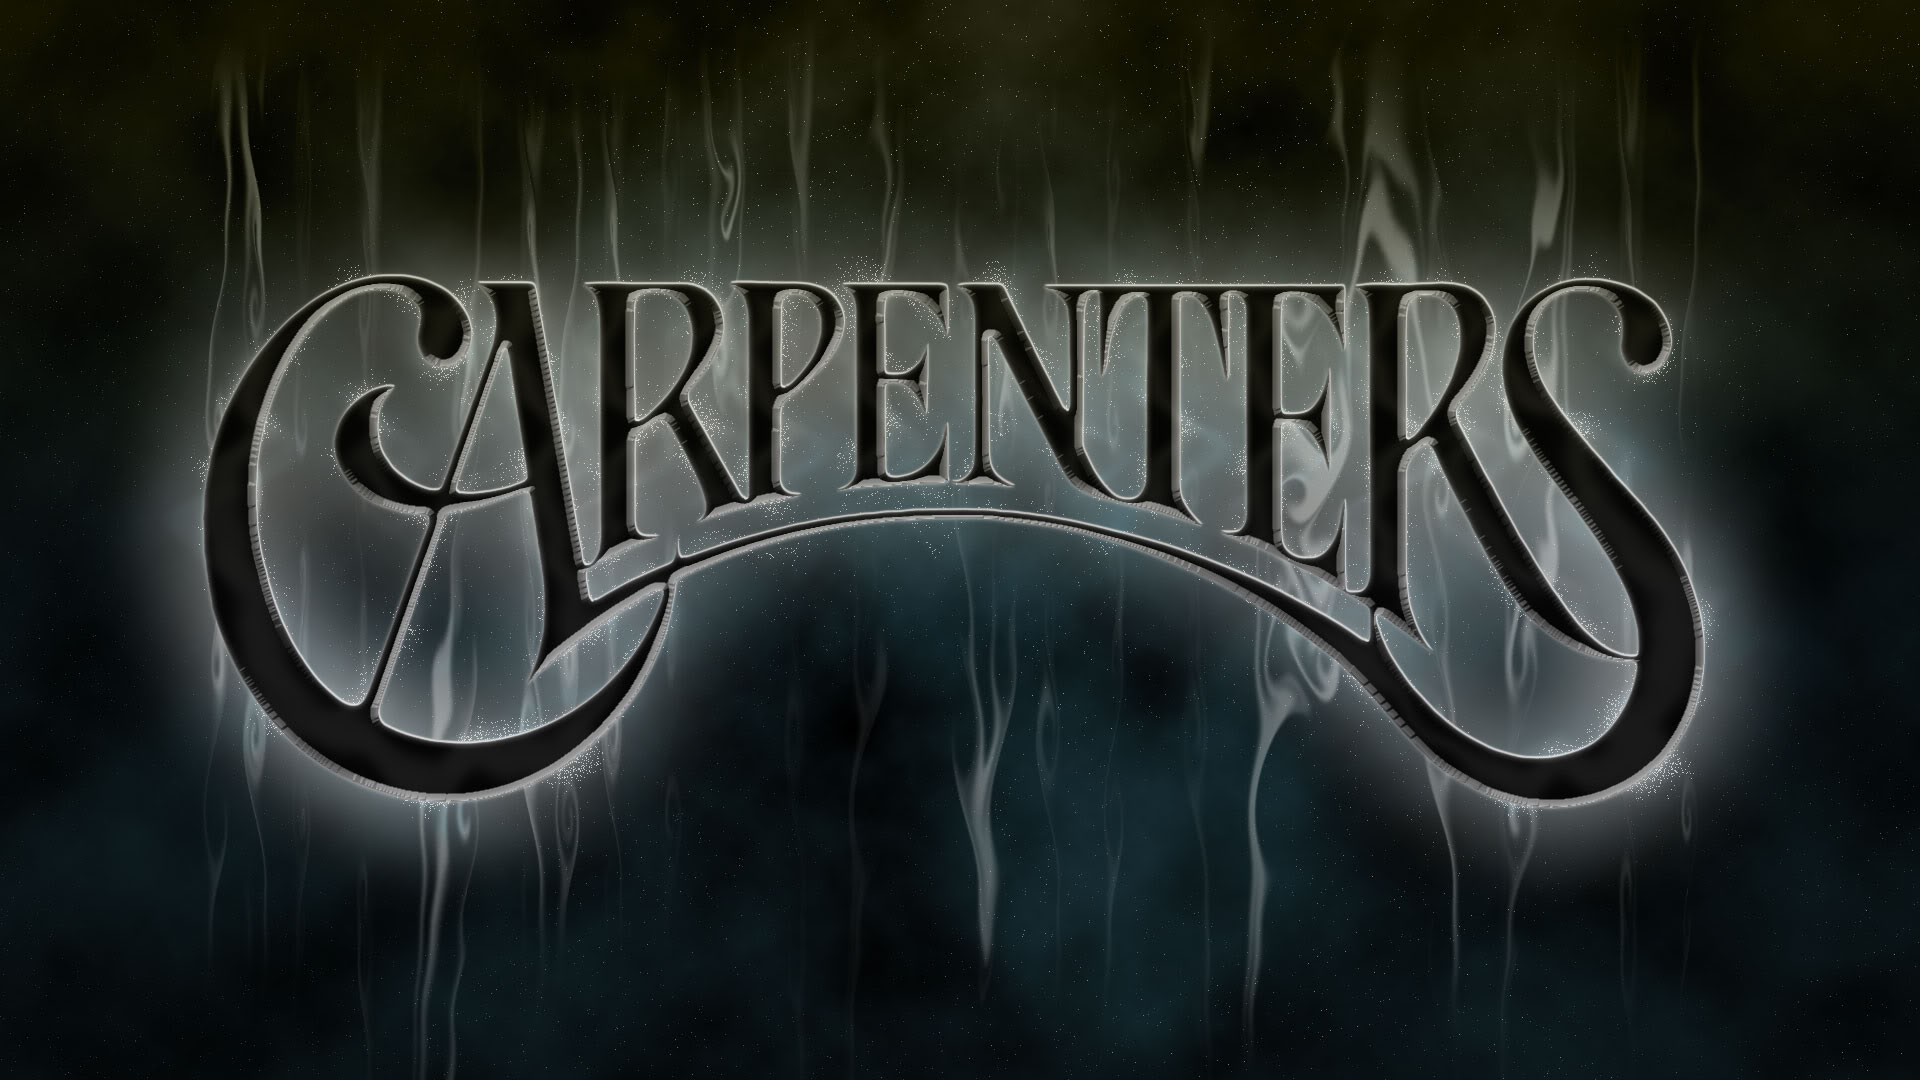 [Review] Carpenters